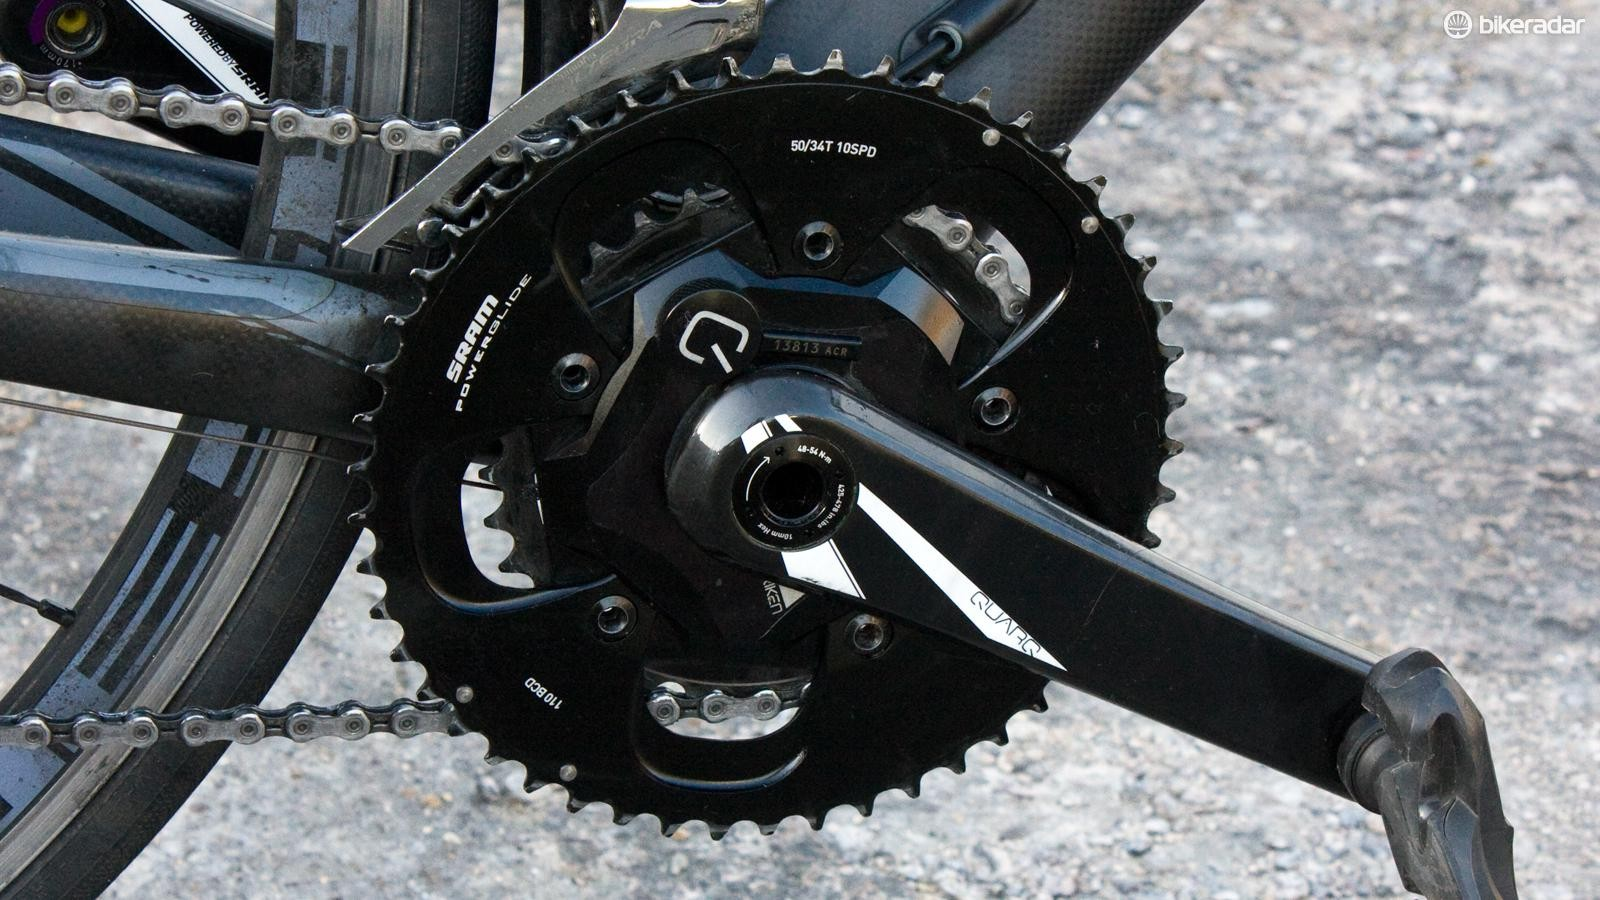 The Quarq Riken 10R is a quality unit that's proven its reliability throughout the year